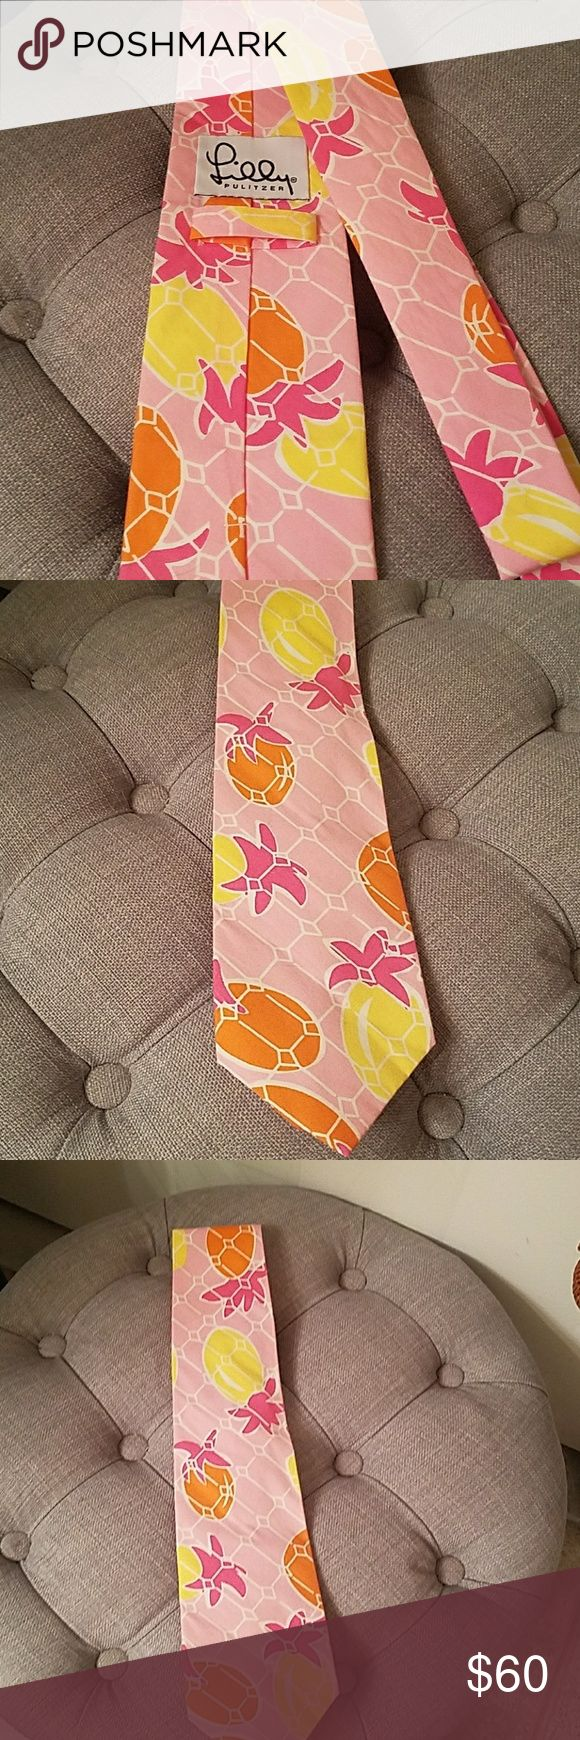 Lilly Pulitzer Colorful tie Lilly pulitzer cotton tie light pink with yellow and orange pineapples with darker pink tops. Have your Preppy gent match your cute dress or Lilly with his own tie! Perfect spring, summer, fraternity, rush, sorority function, tailgating tie to stand out! Lilly Pulitzer Accessories Ties